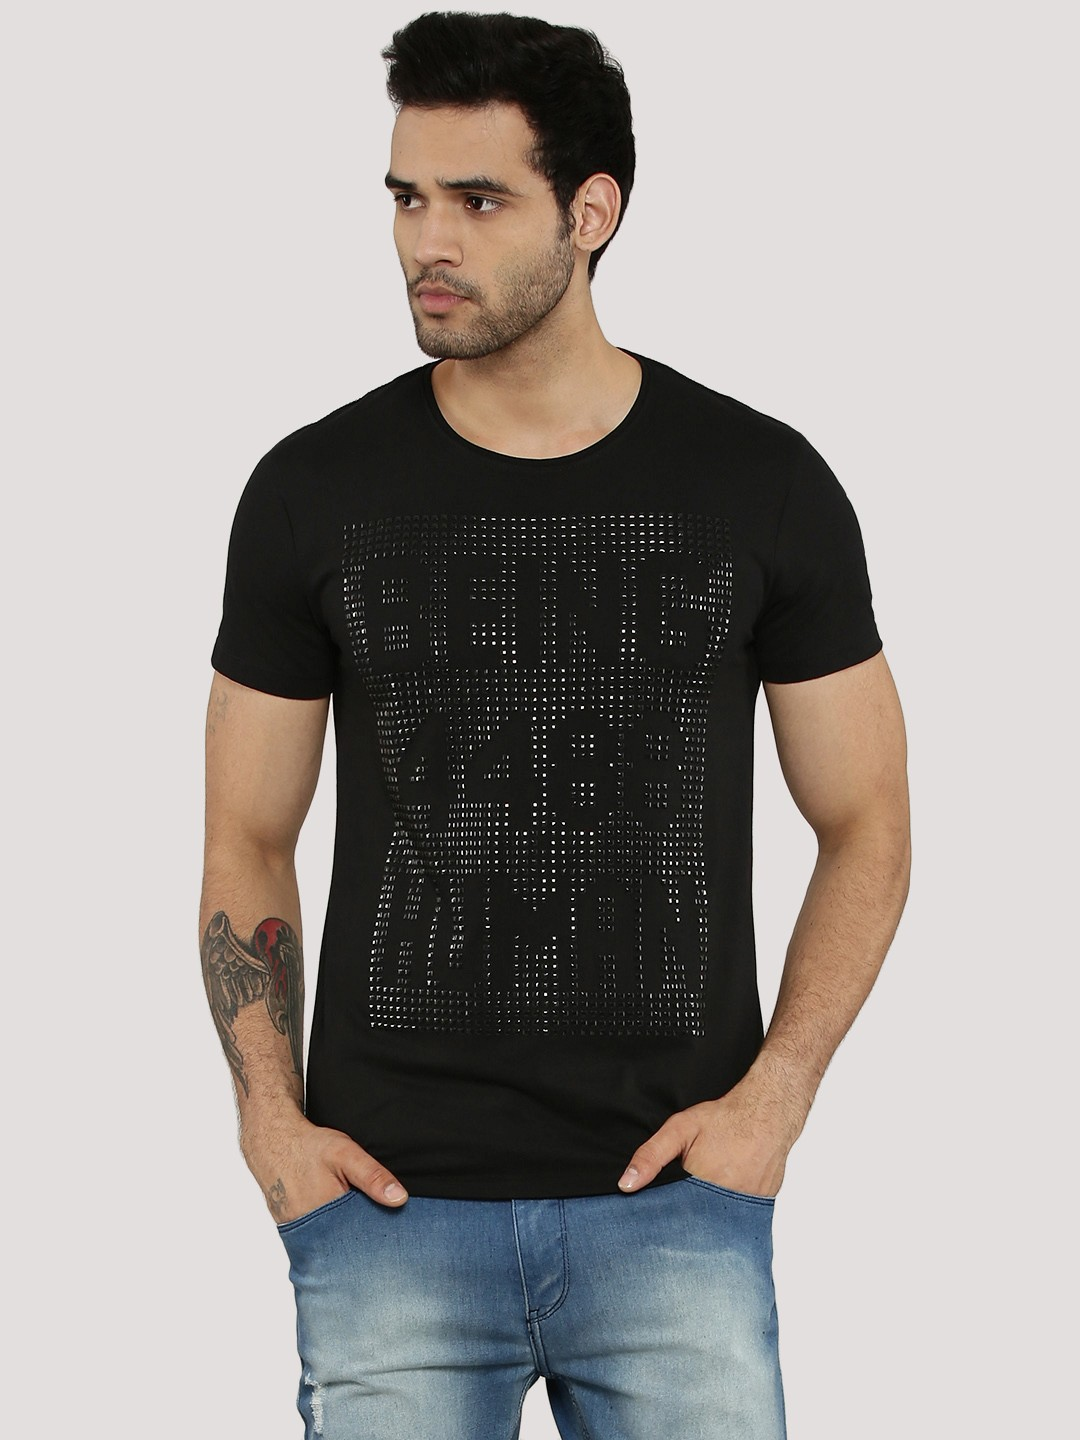 Buy being human studded logo t shirt for men men 39 s black for Being human t shirts buy online india